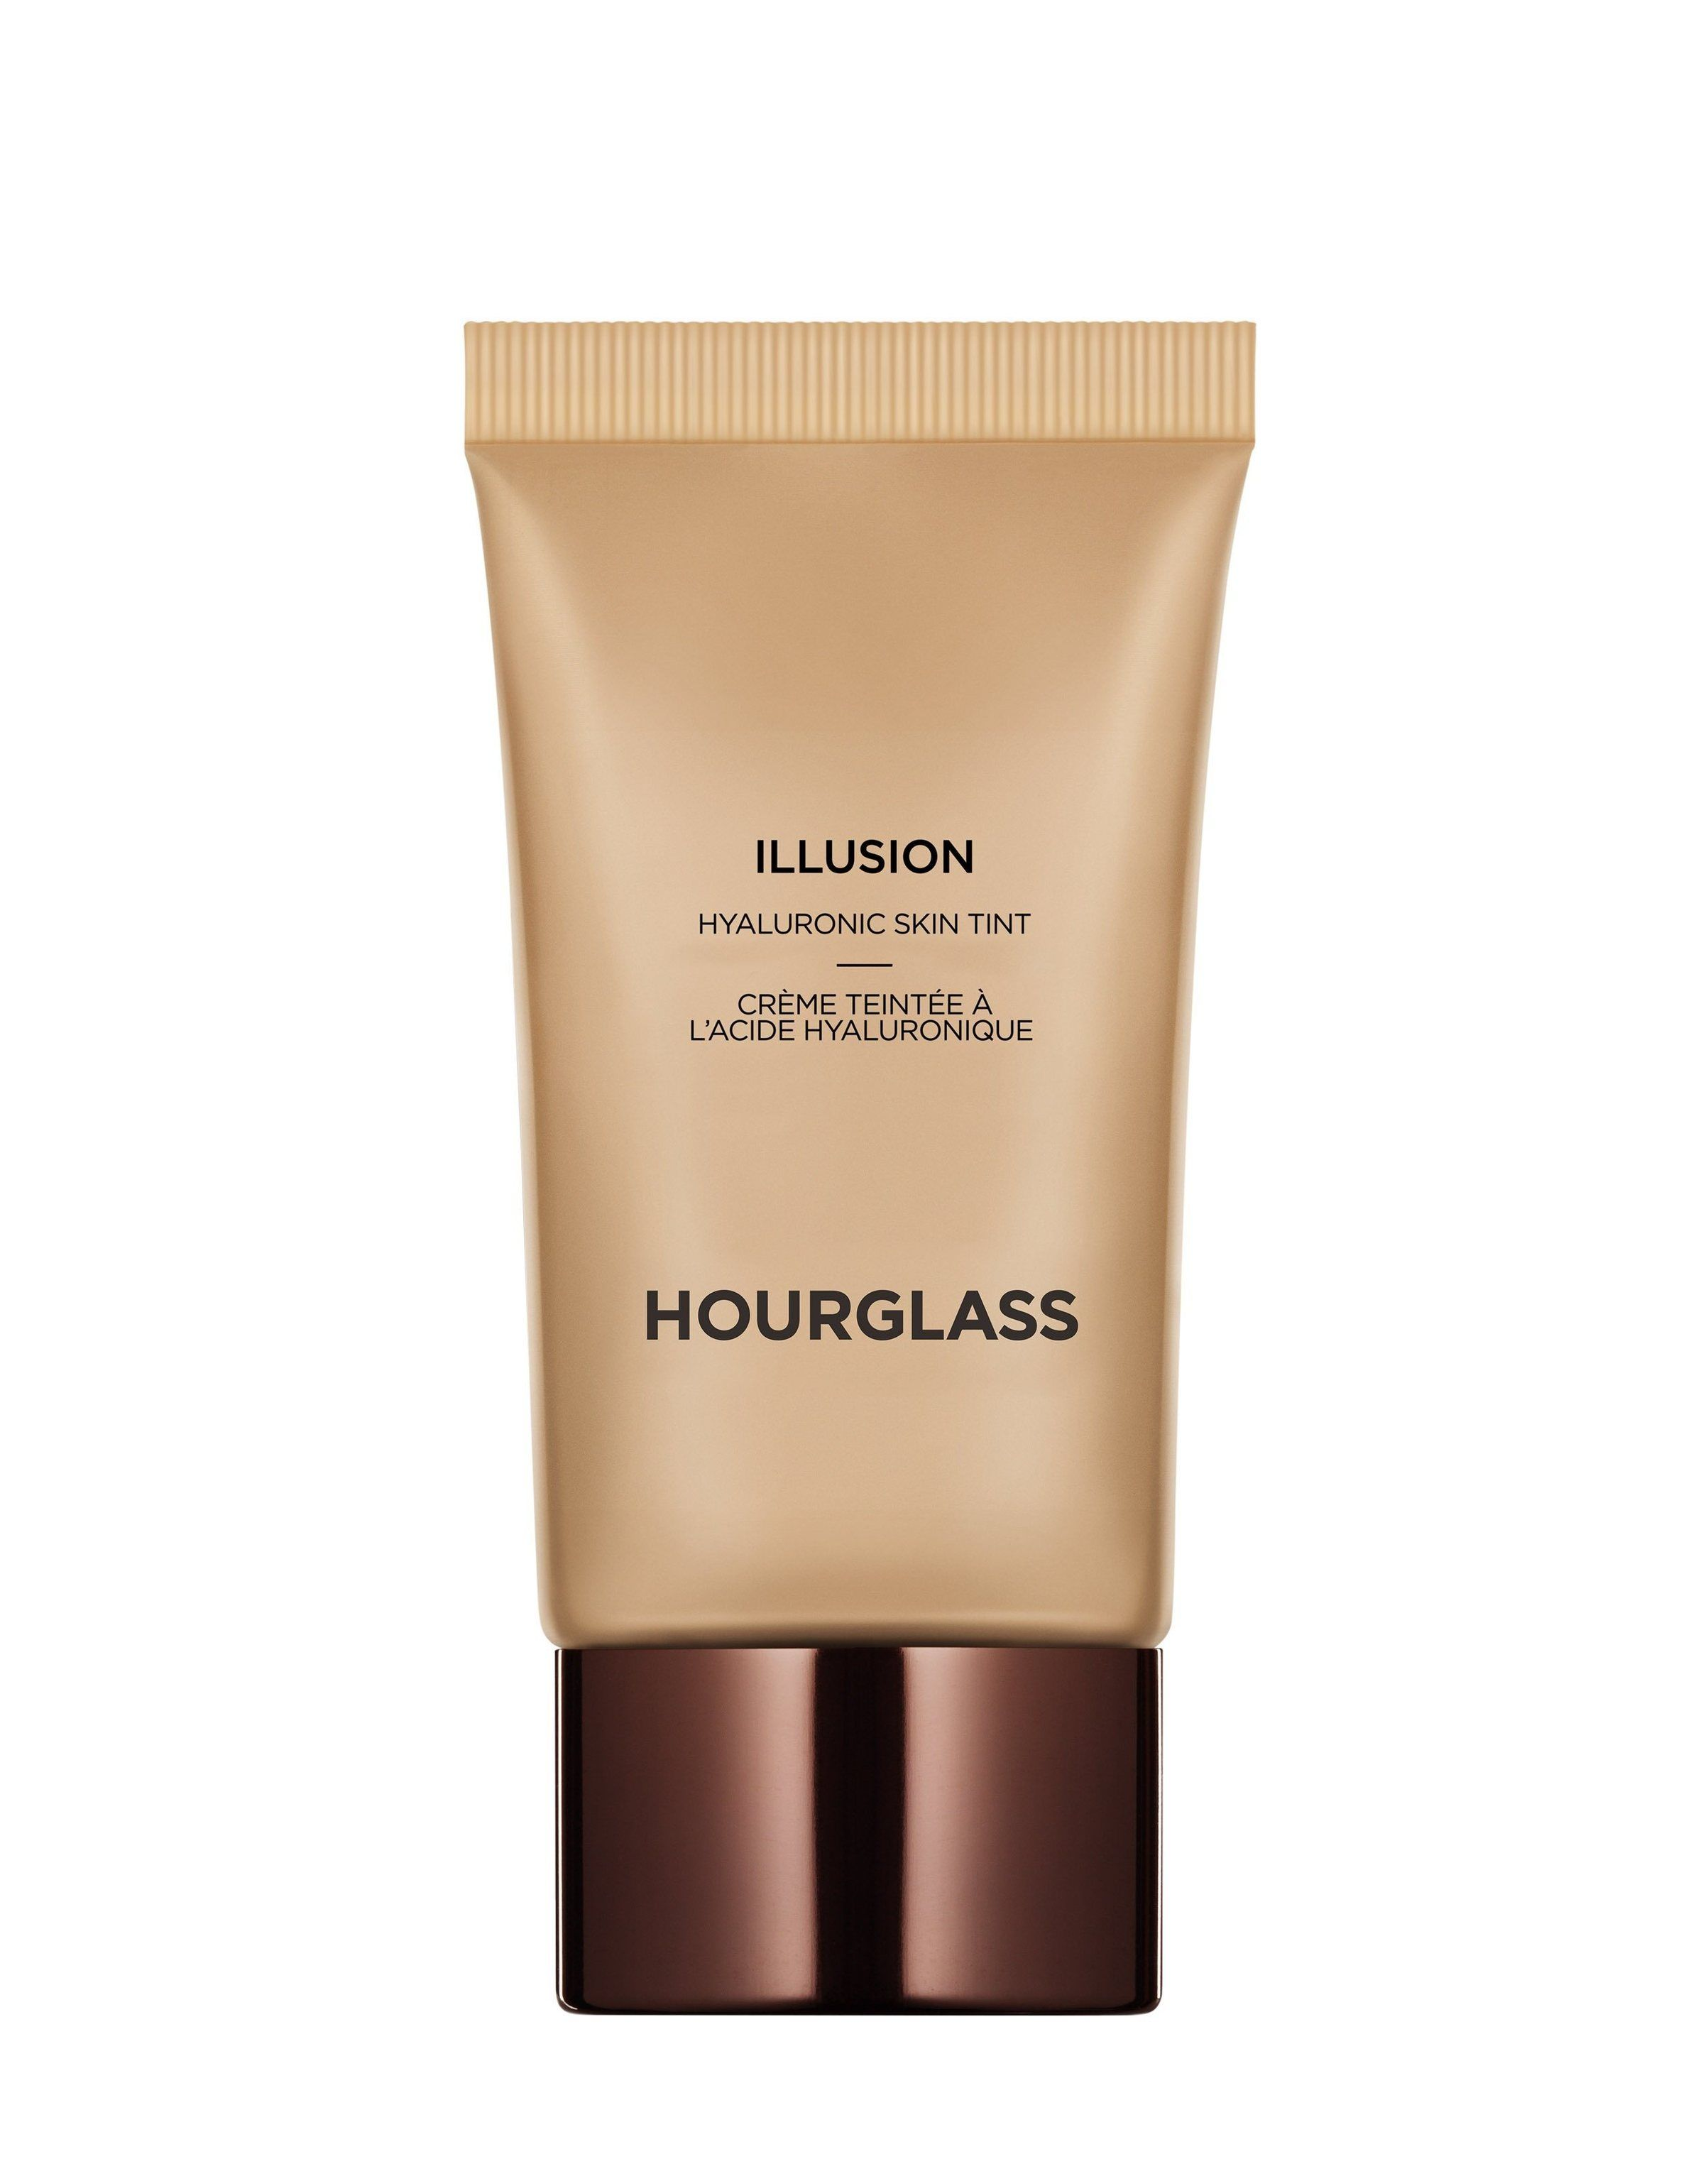 Illusion™ Hyaluronic Skin Tint Hourglass cosmetic